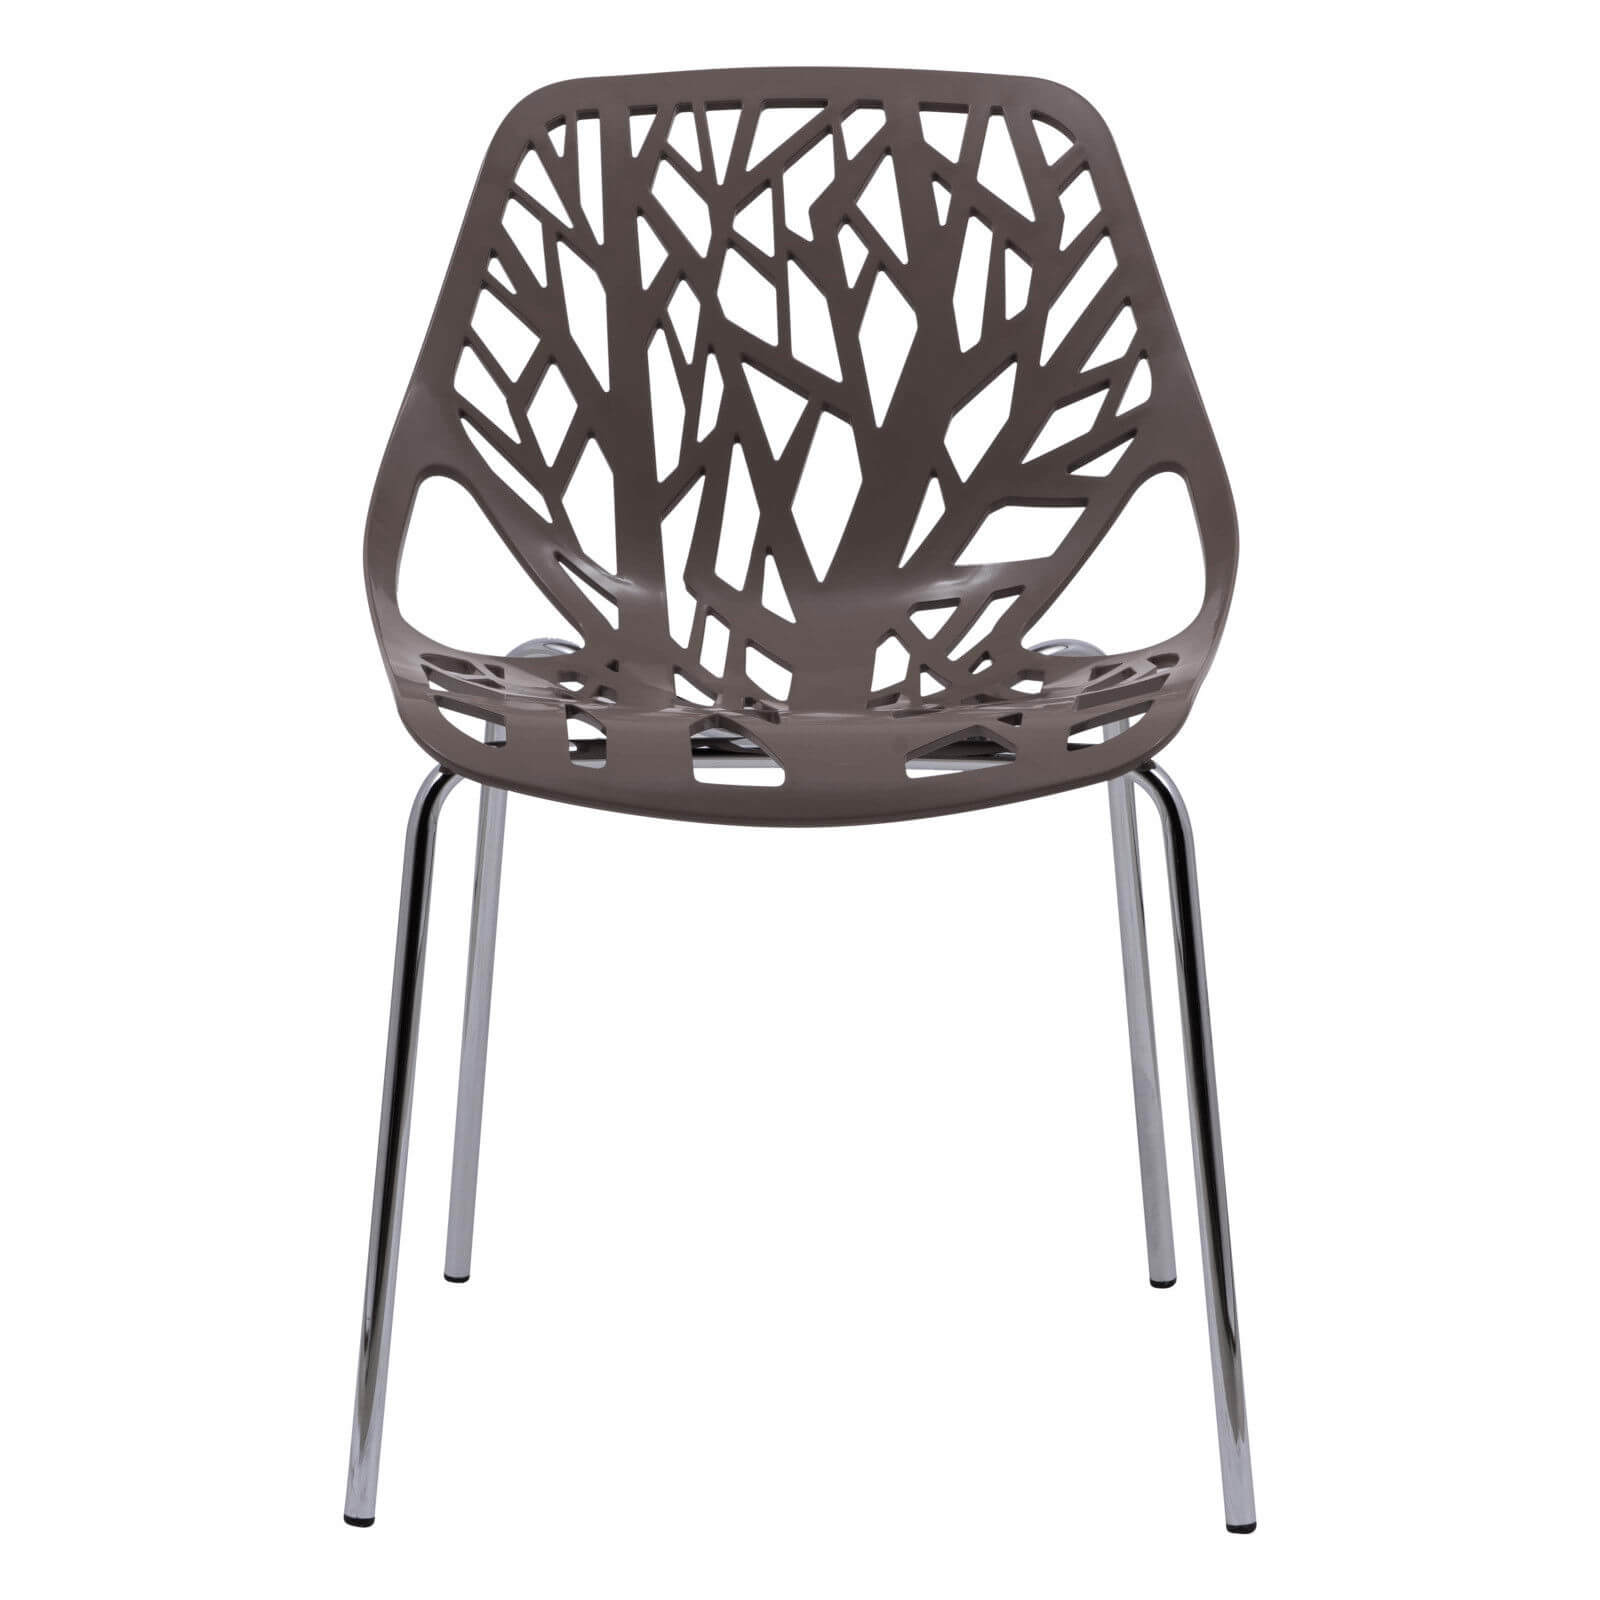 chair with cheap modern iron office wicker ideas plastic size garden red full in professional patio outdoor yellow wrought feet furniture stackable breathtaking chairs of